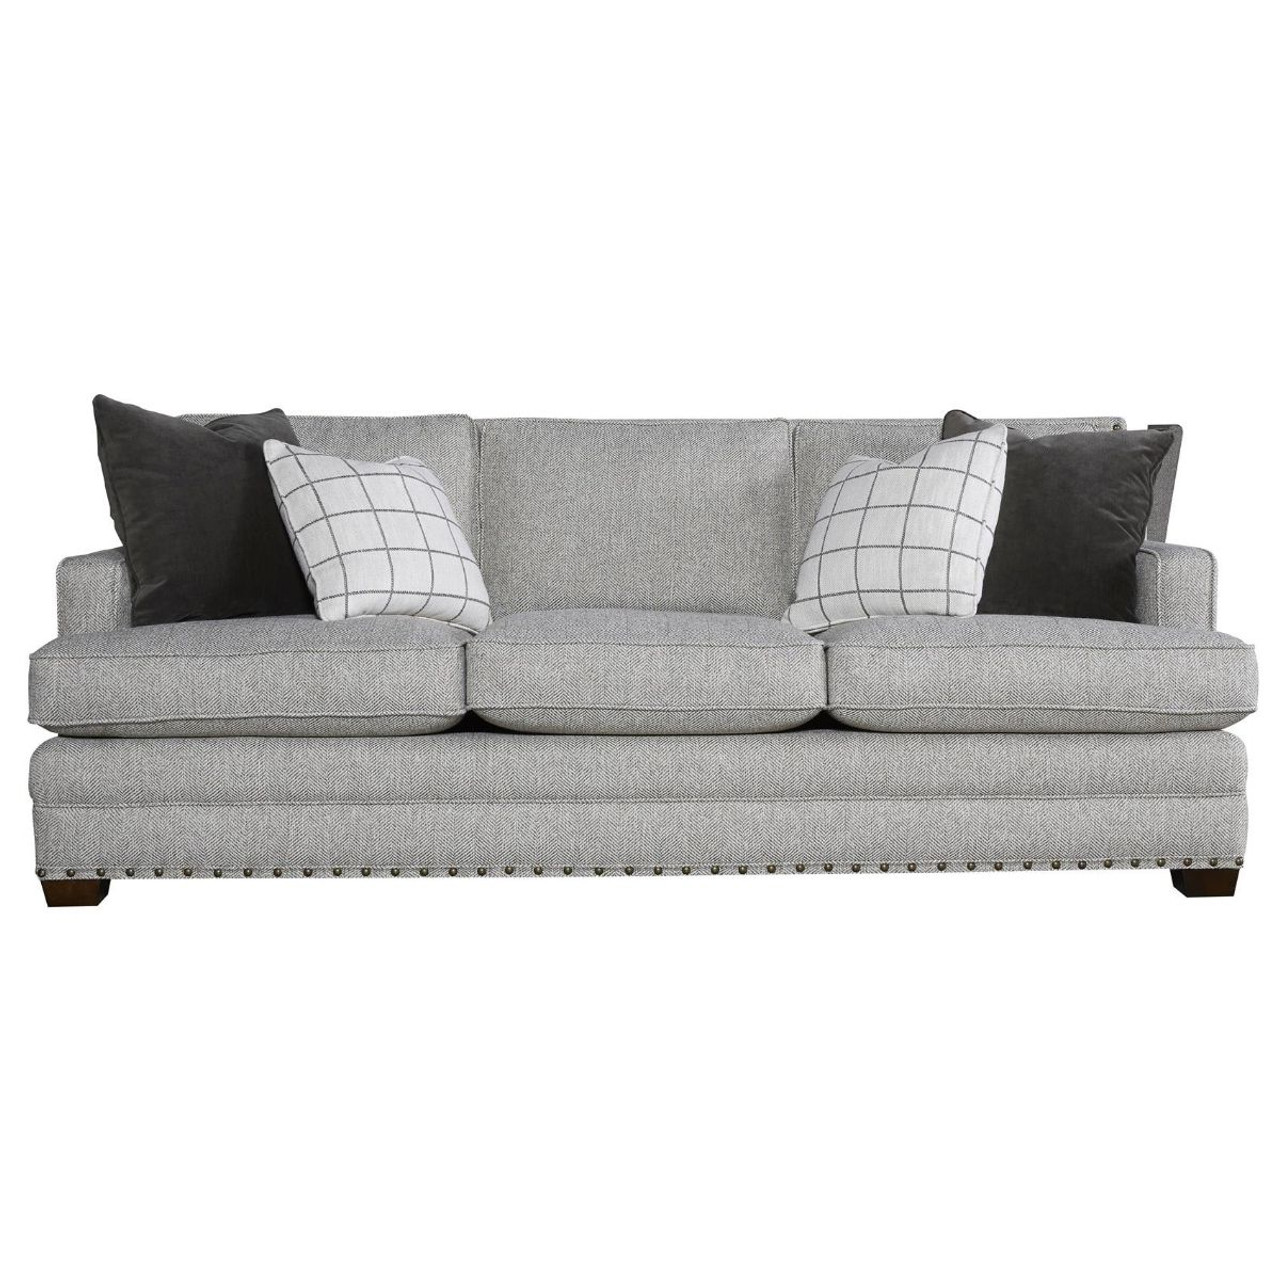 Riley Upholstered 3 Seat Sofa With Nailheads